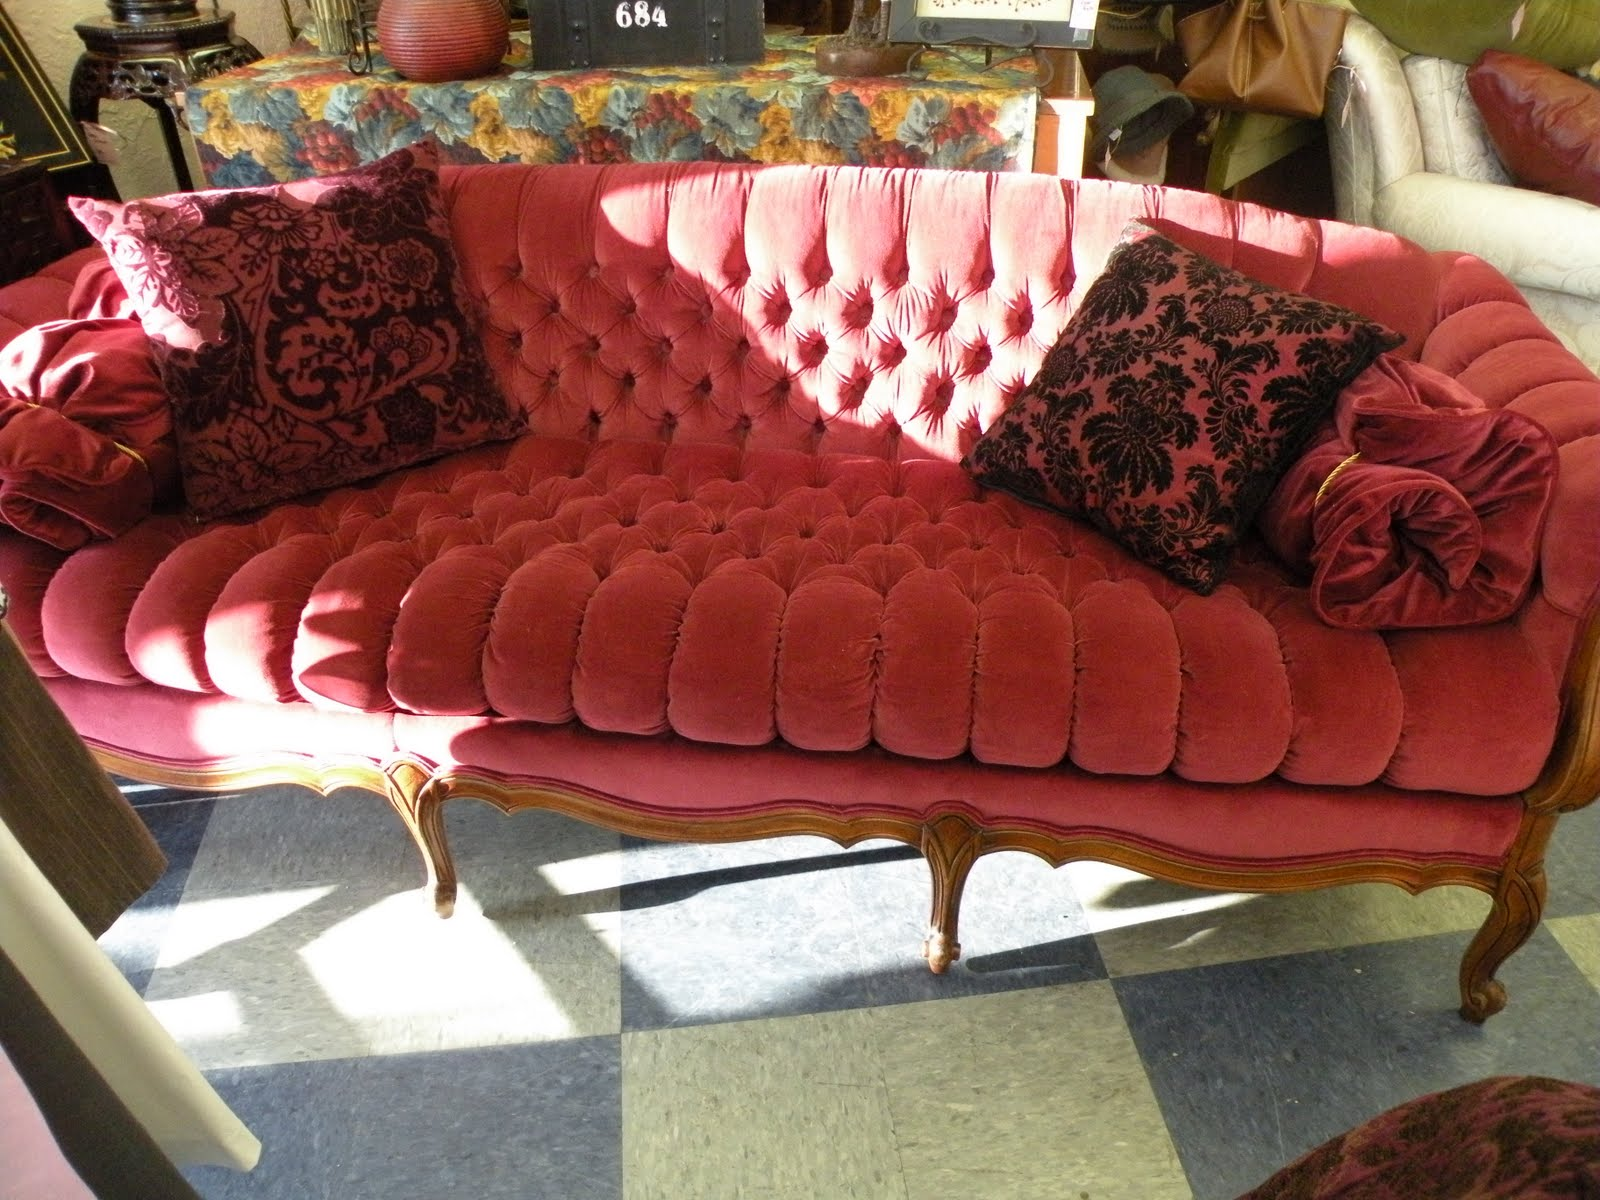 Sofa Covers London Ontario One Seater Singapore Wallpaper Shops In Toronto Free Download